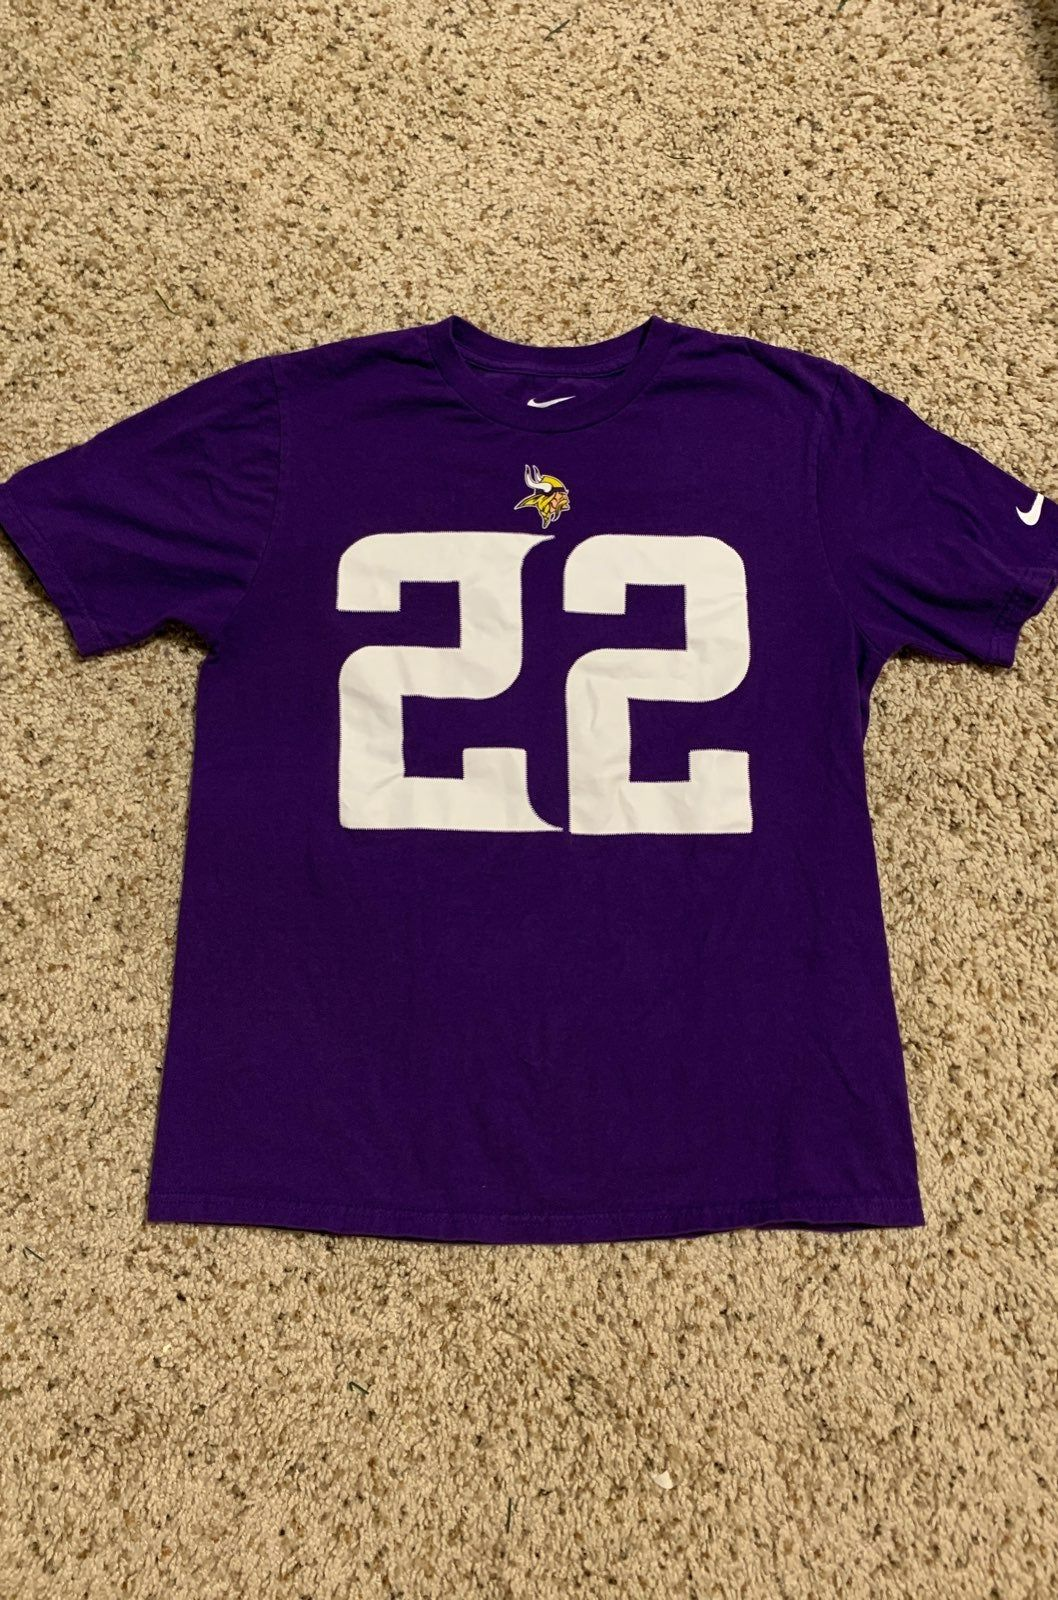 Youth Size Xl I M A Womens Size Small I Bought To Wear But It S Just A Little Too Snug On Me Worn Twice Nike Shirts How To Wear Shirts